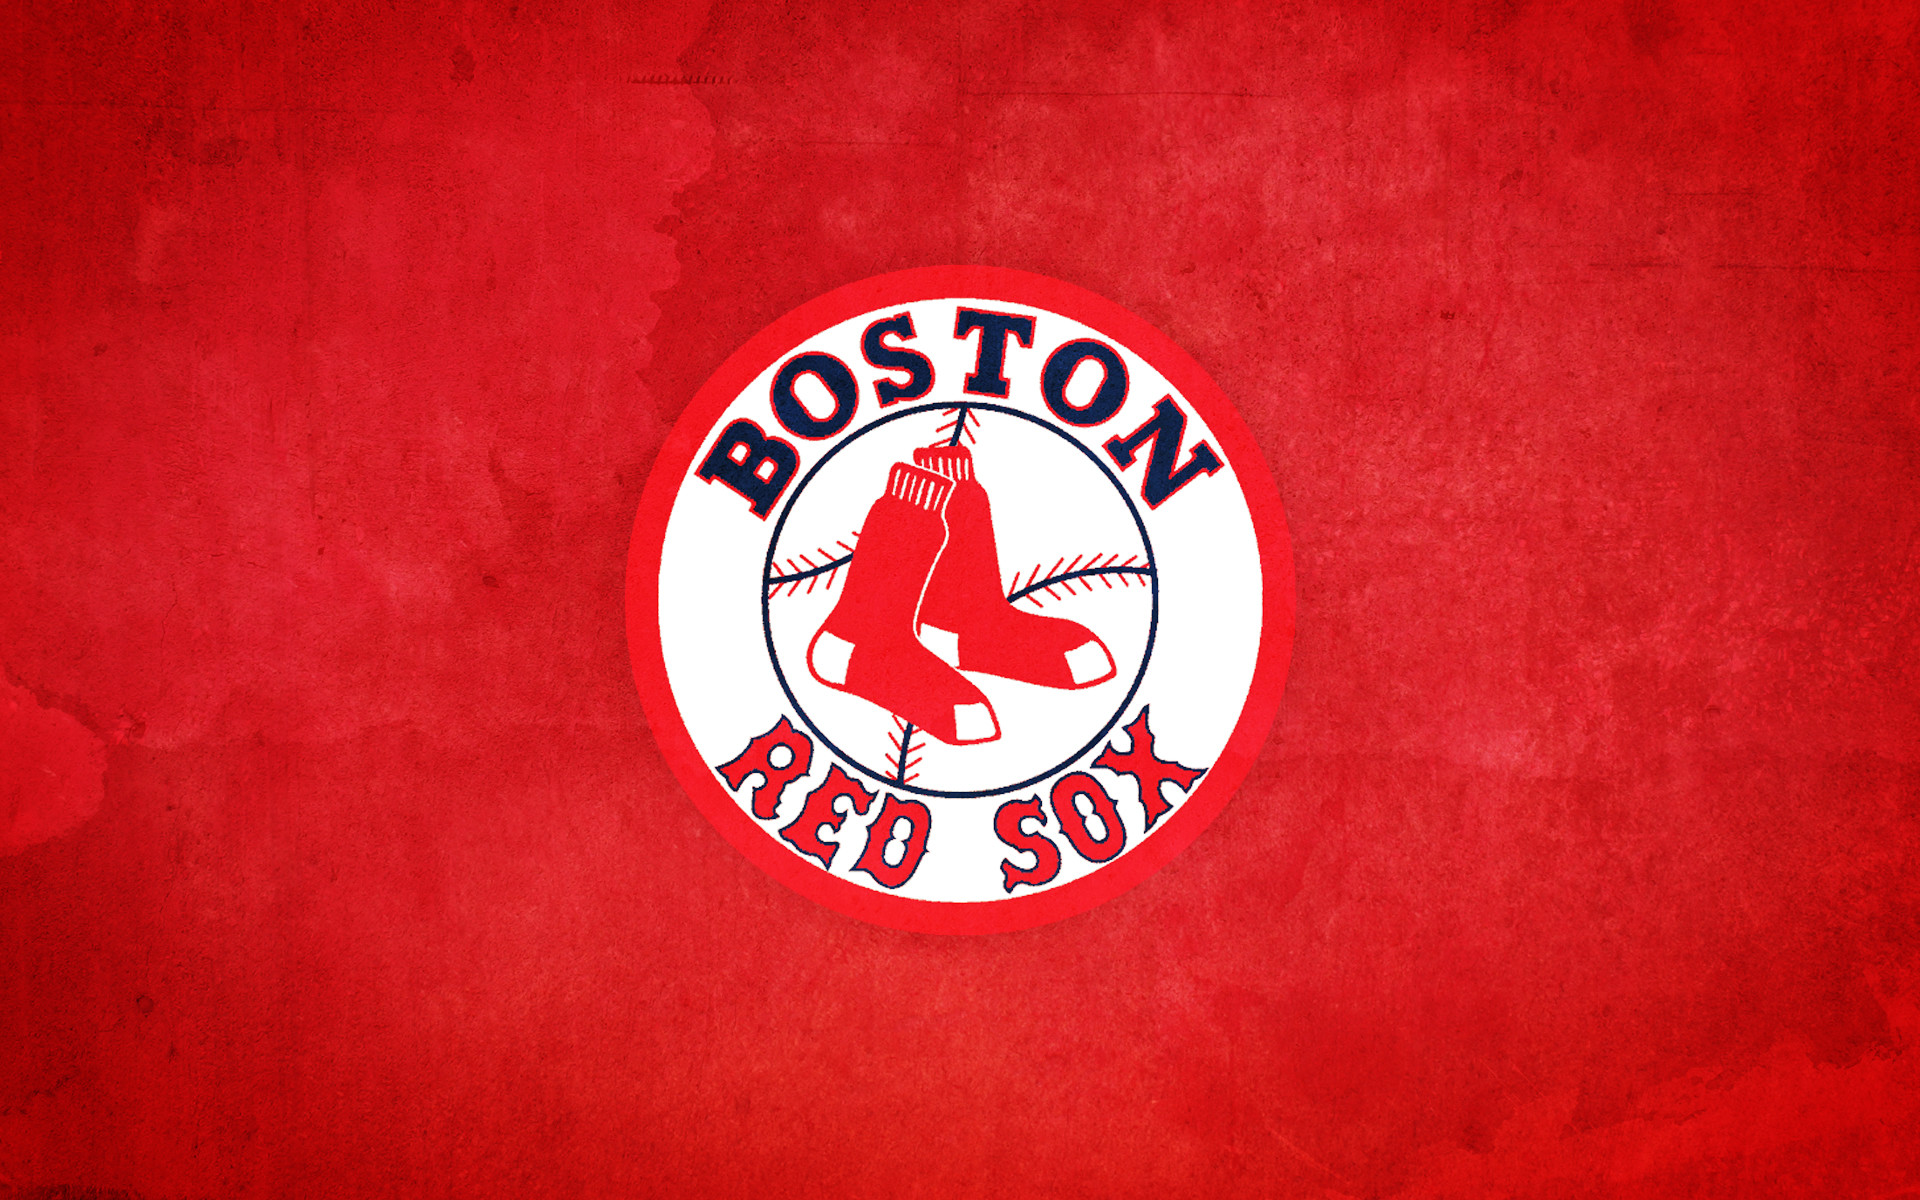 1920x1200 - Boston Red Sox Wallpaper Screensavers 3